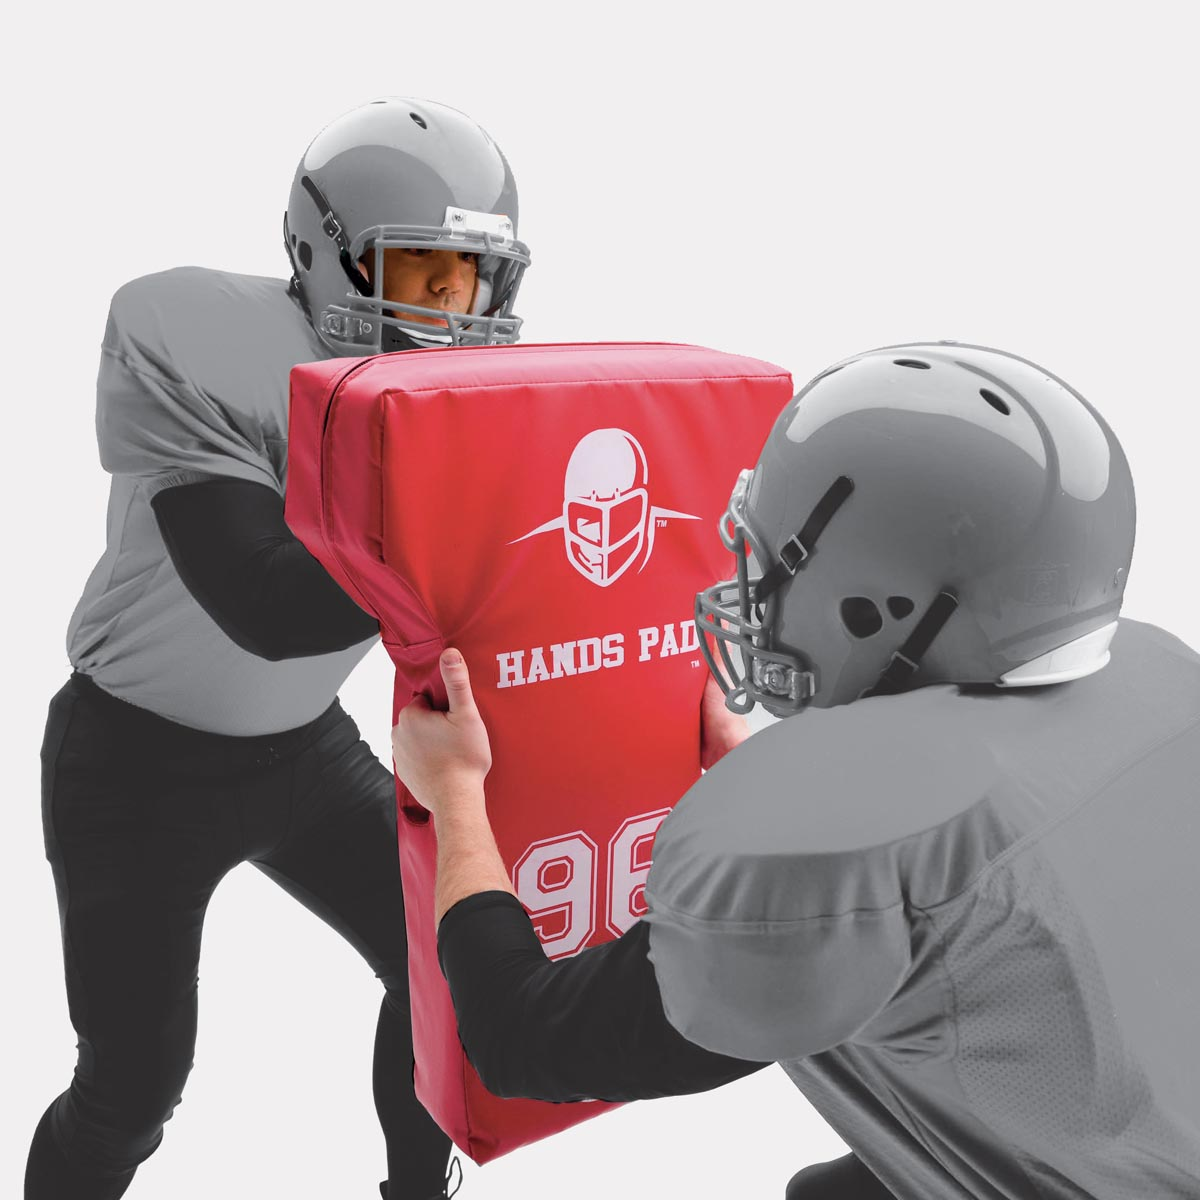 football shields - hands pad